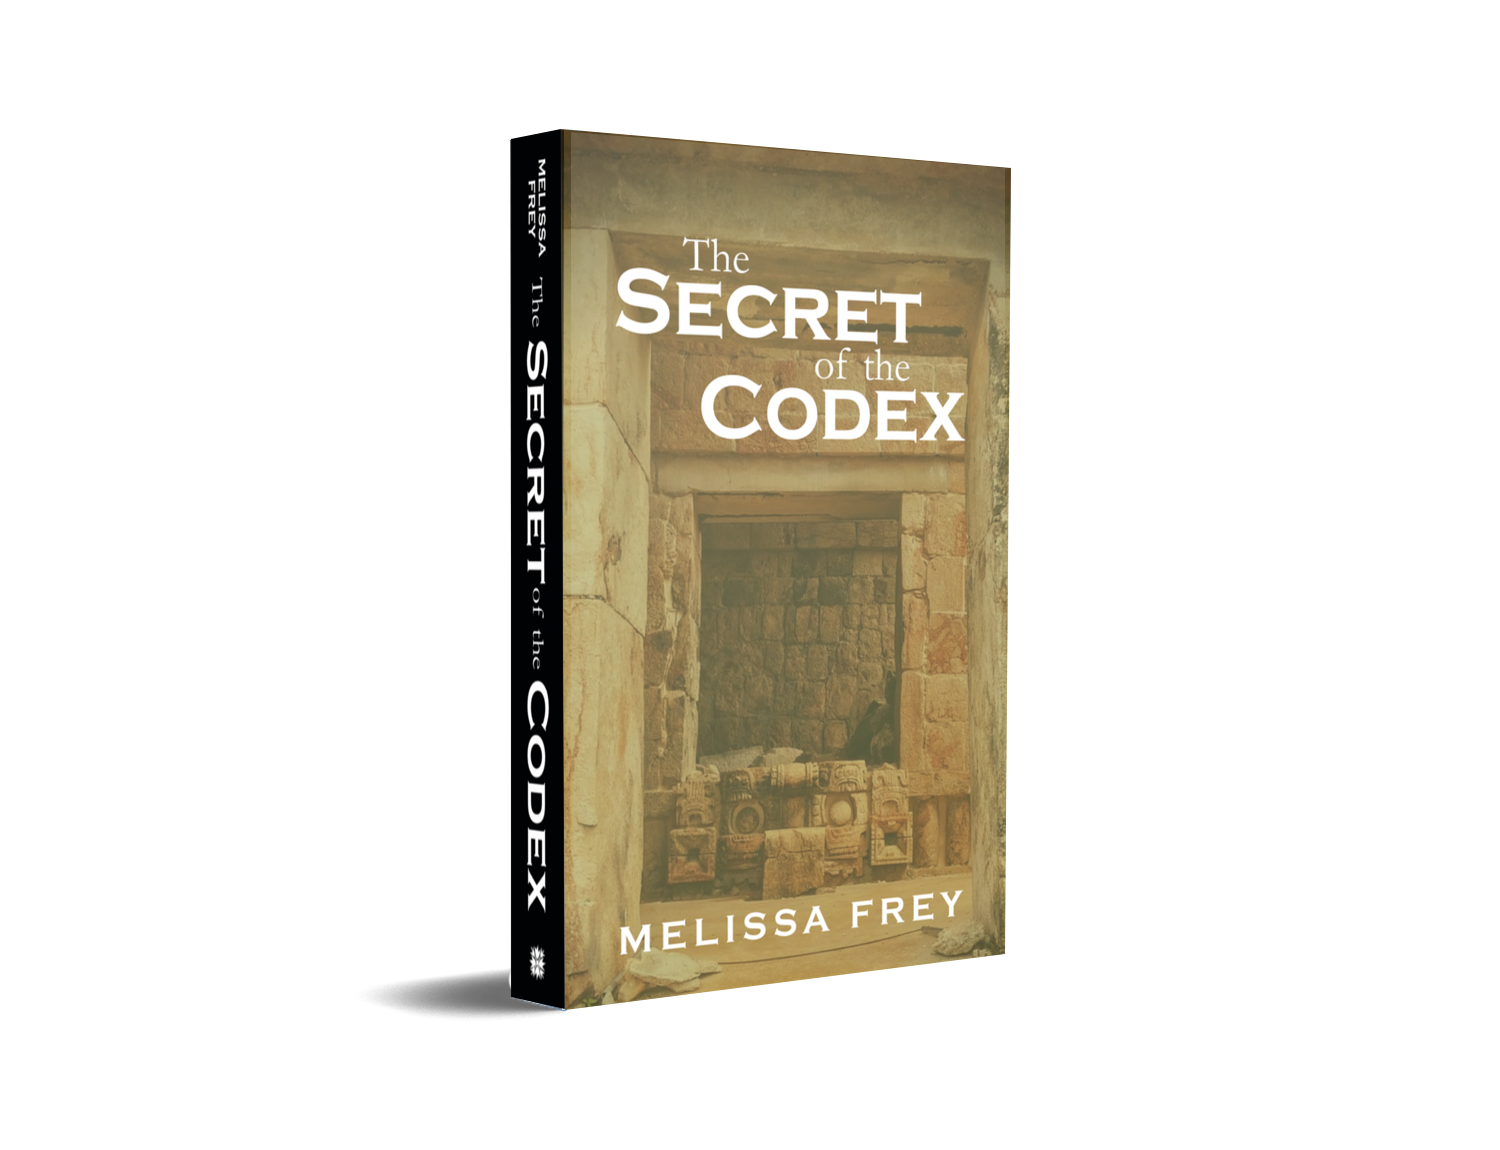 The Secret of the Codex Paperback Promo